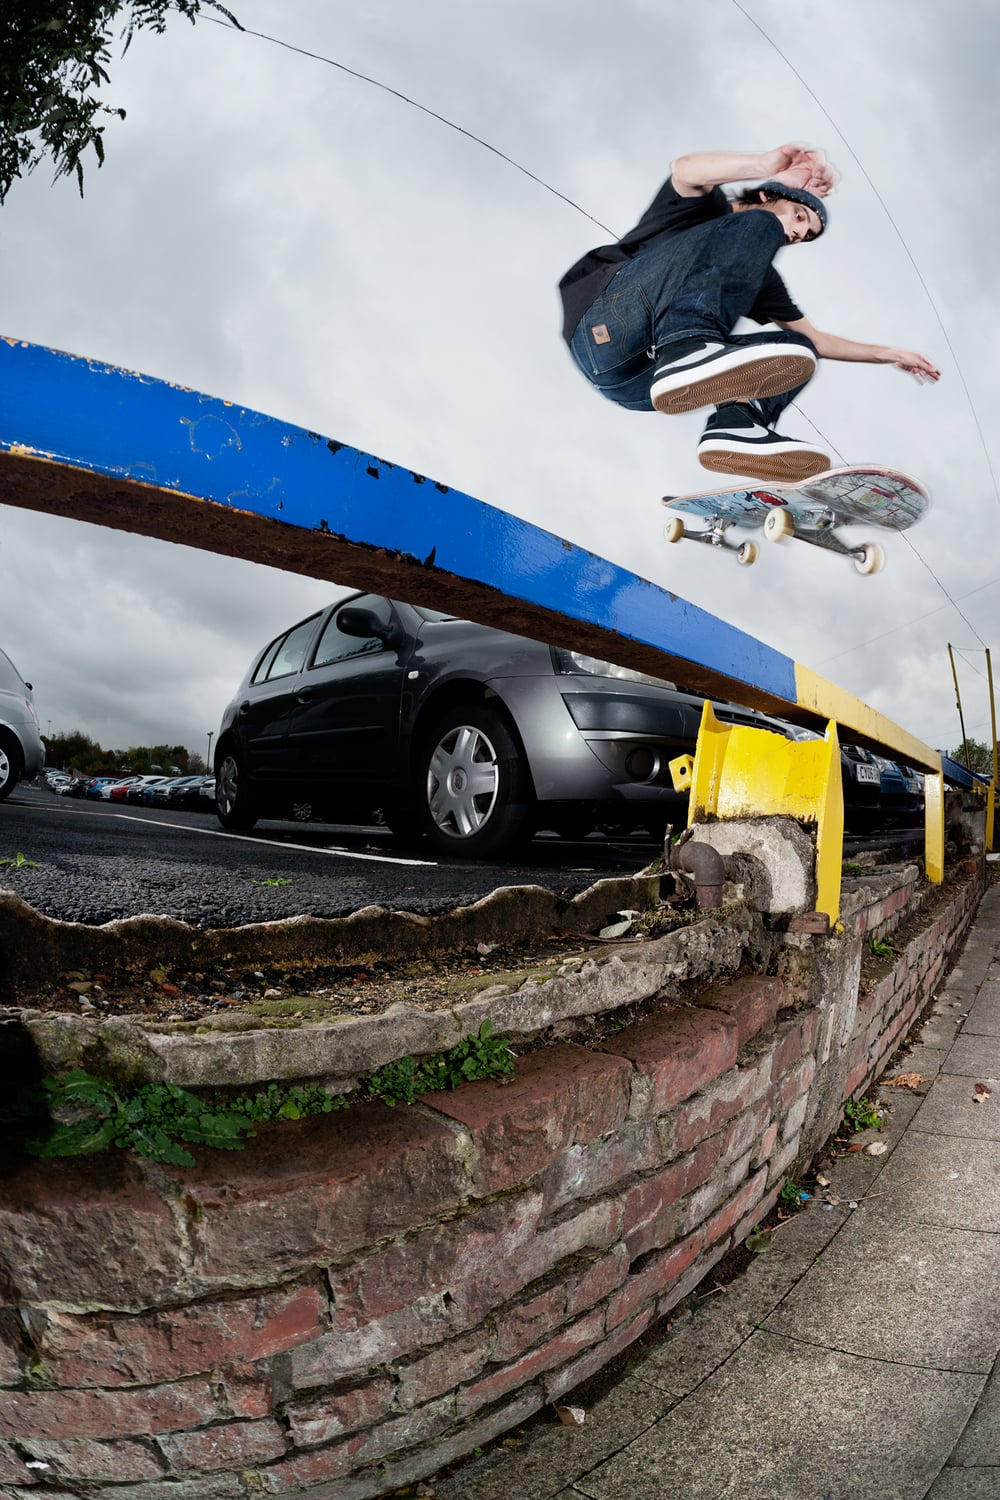 Joe_Gavin_nollie_frontside_kickflip_Manchester_NORTH_FINAL.jpg